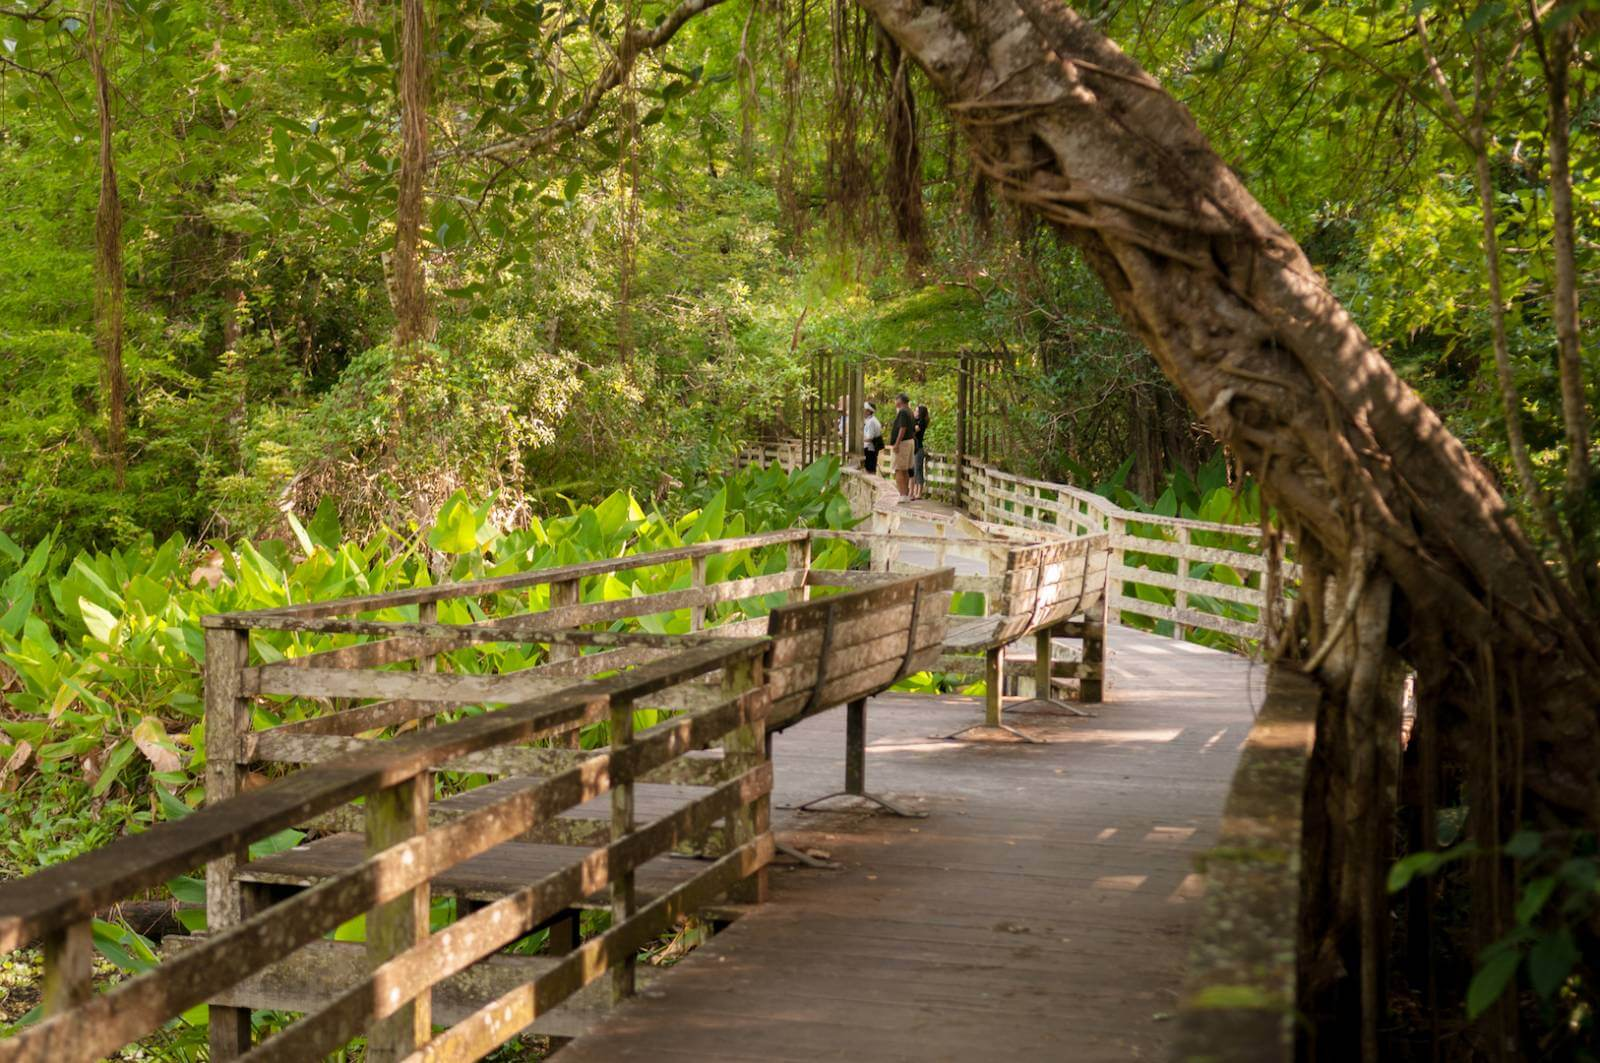 Corkscrew Swamp Sanctuary in Naples, Florida is one of the top bird watching sites in the USA. The boardwalk offers excellent views of endangered wood storks that nest in the sanctuary. Photo by Gary Jung.